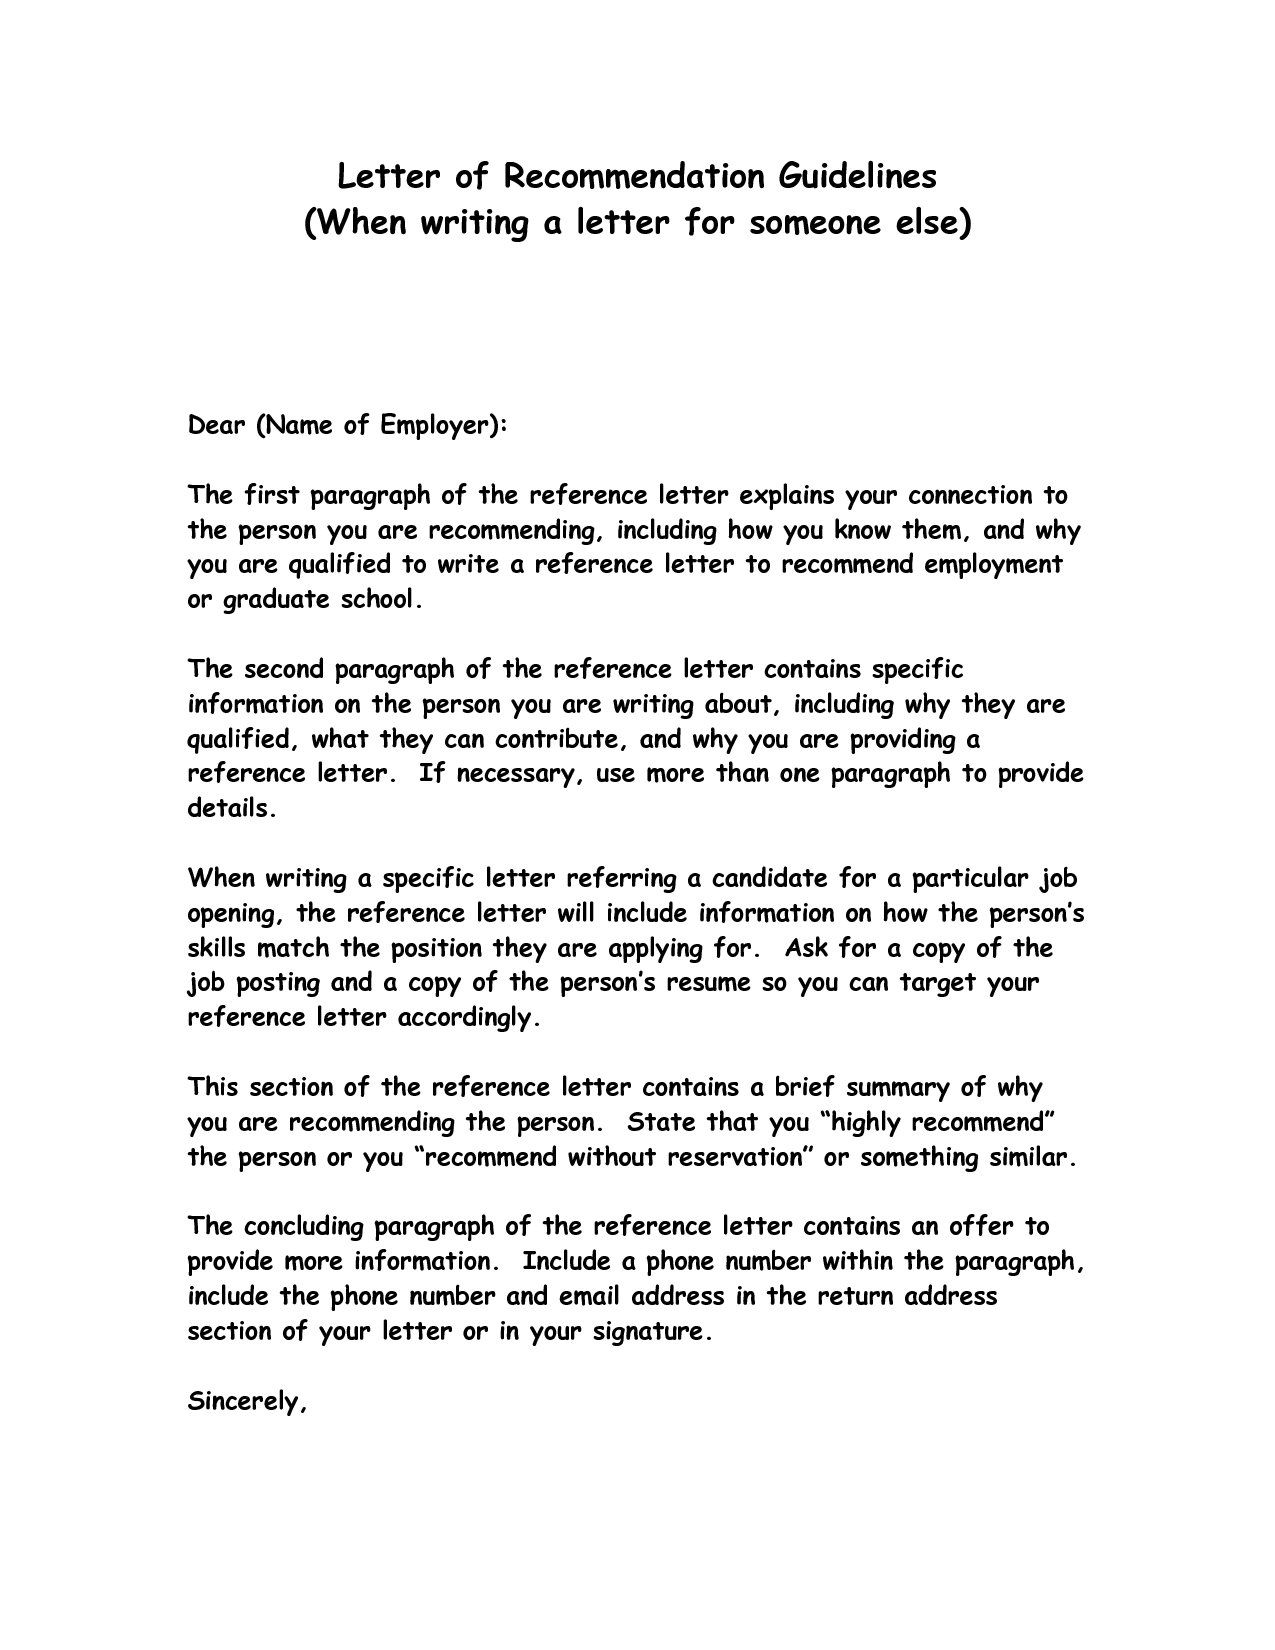 How To Write A Reference Letter | Letter | Career | Pinterest